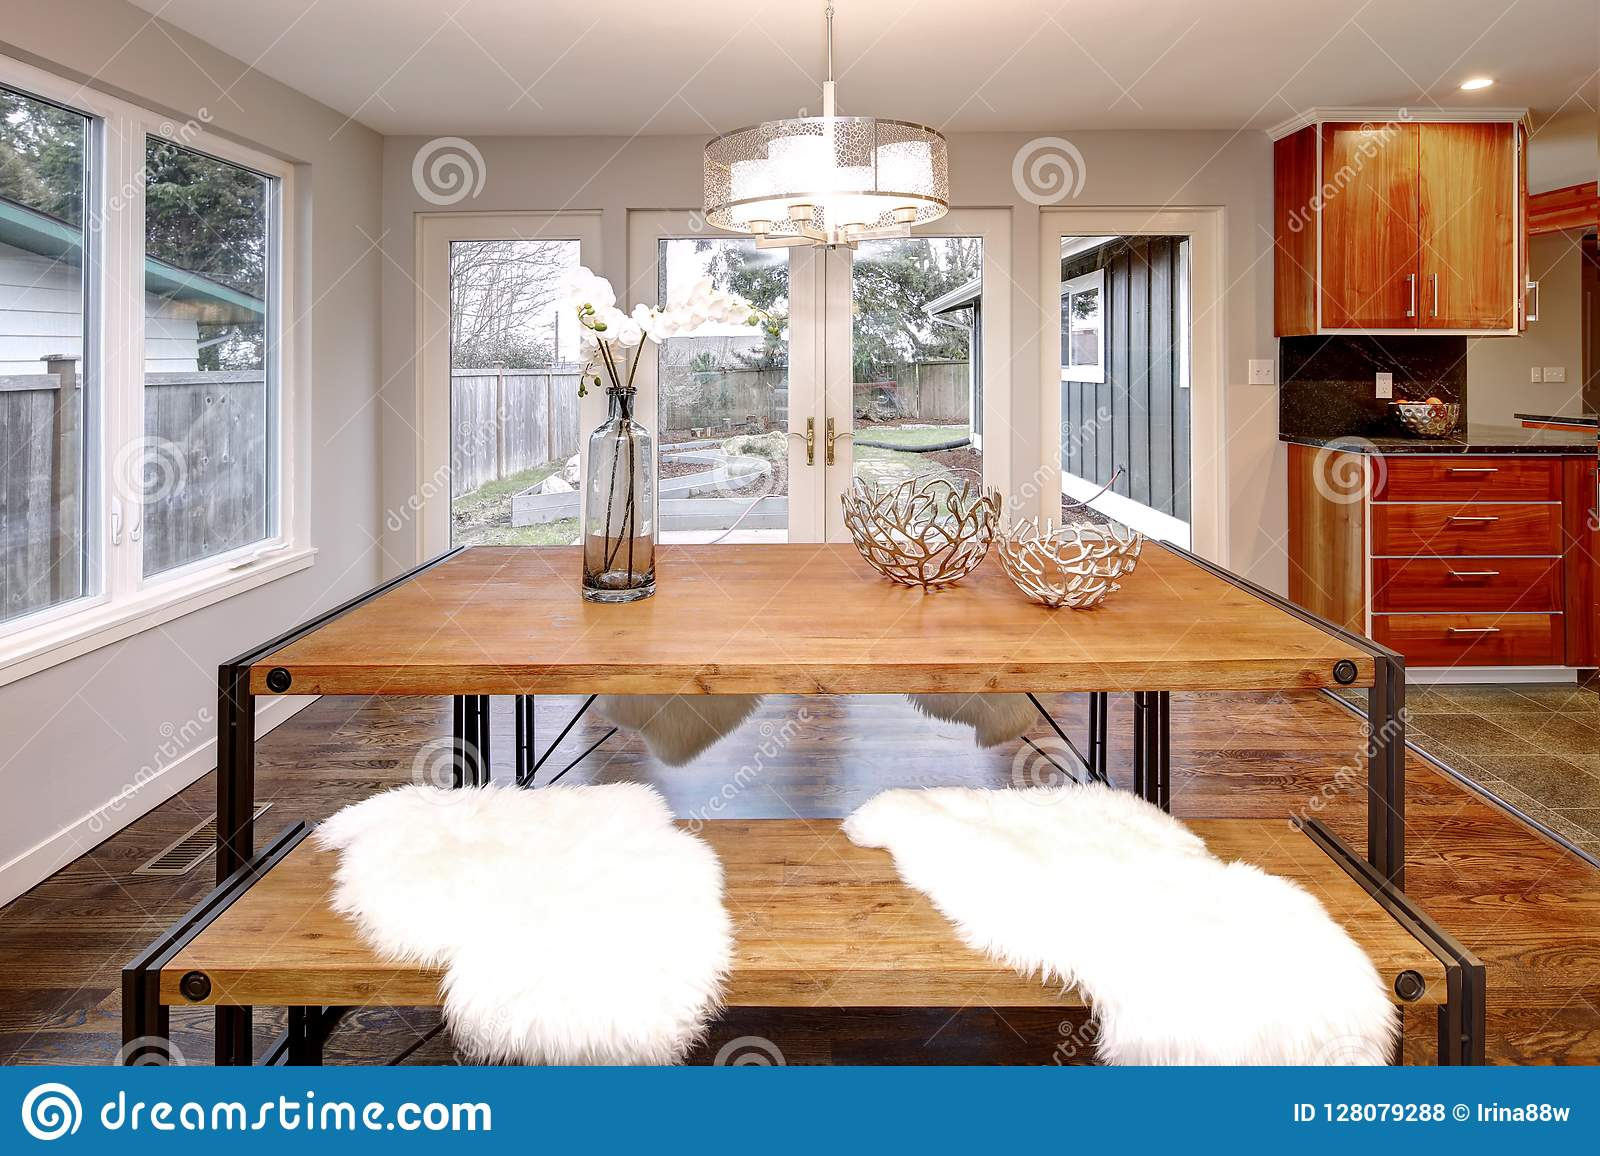 Spacious Dining Room With Wooden Dining Table Stock Photo Image Of House Northwest 128079288